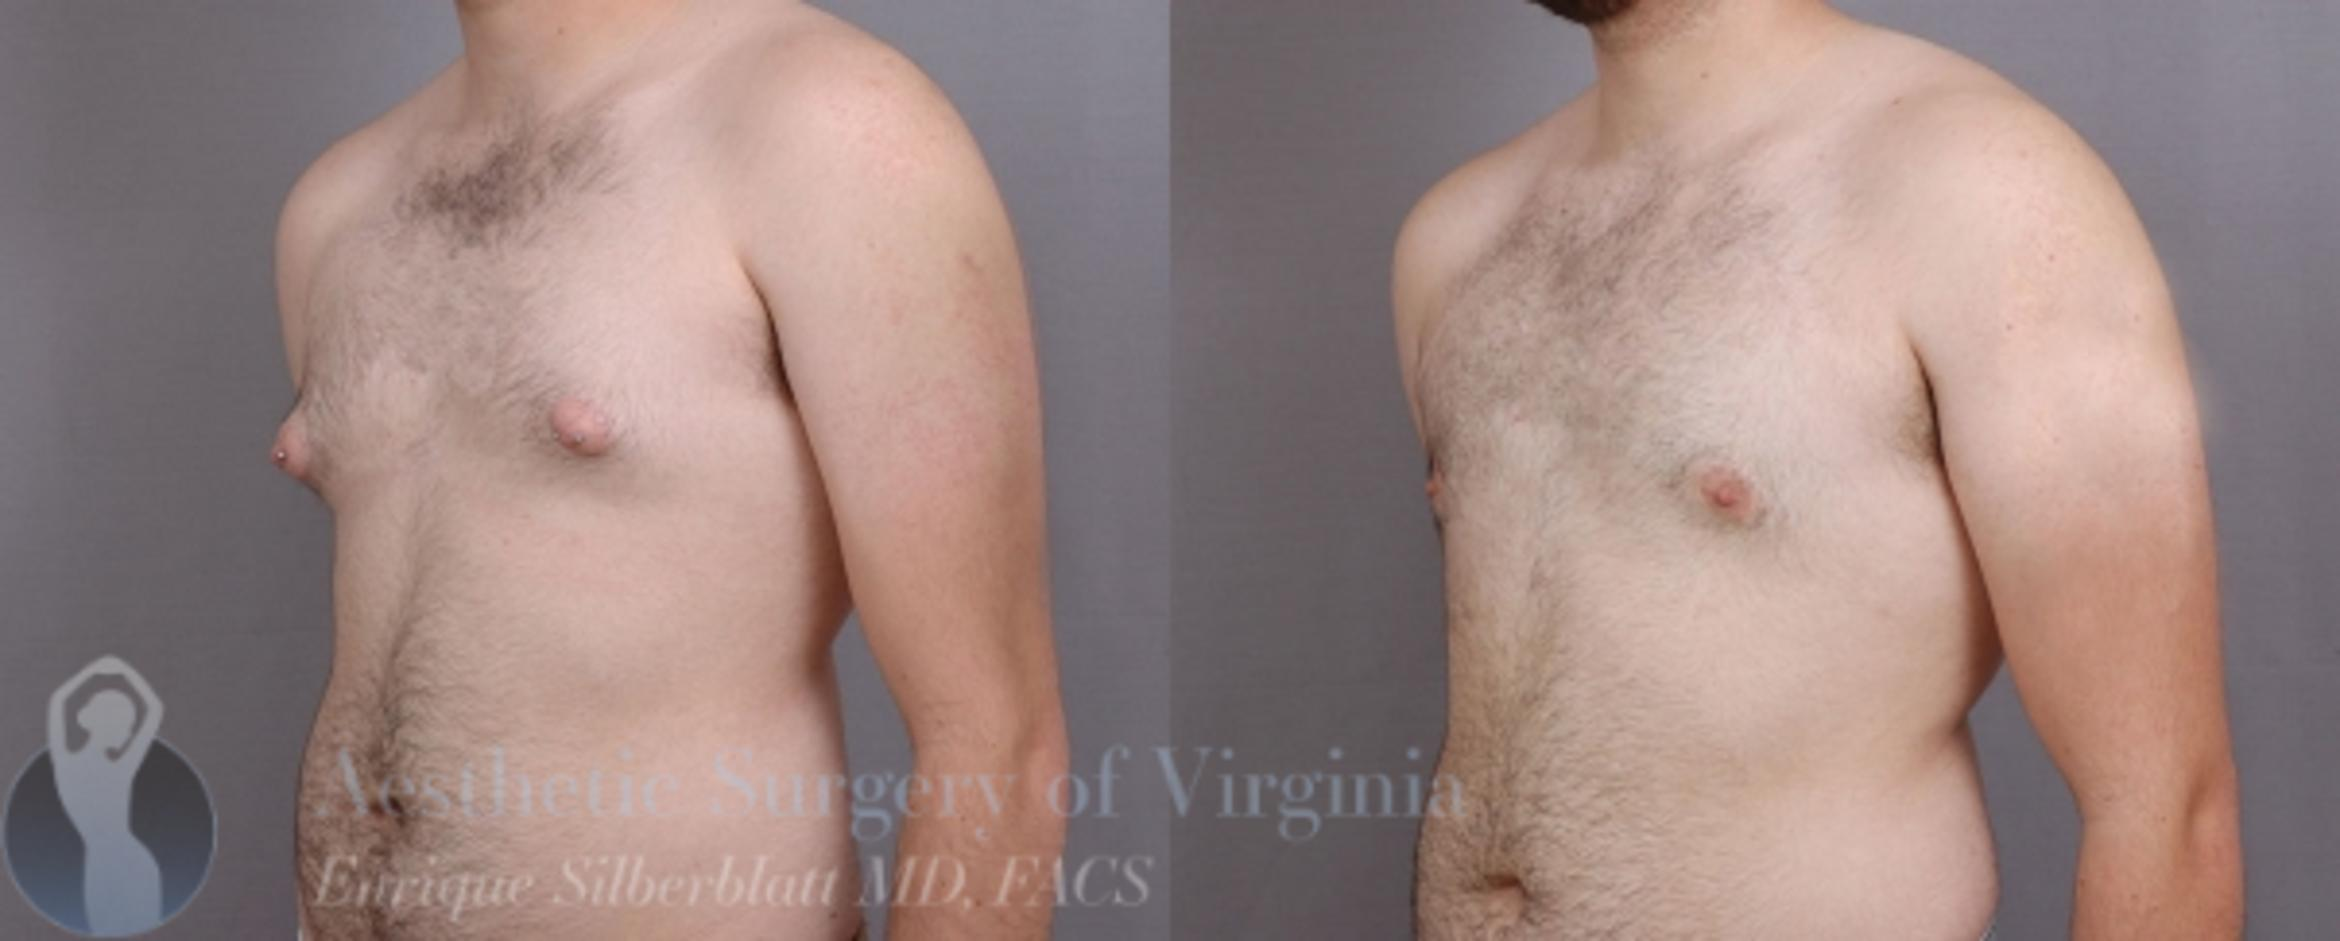 Female to Male Breast Surgery Case 58 Before & After View #2 | Roanoke, VA | Aesthetic Surgery of Virginia: Enrique Silberblatt, MD